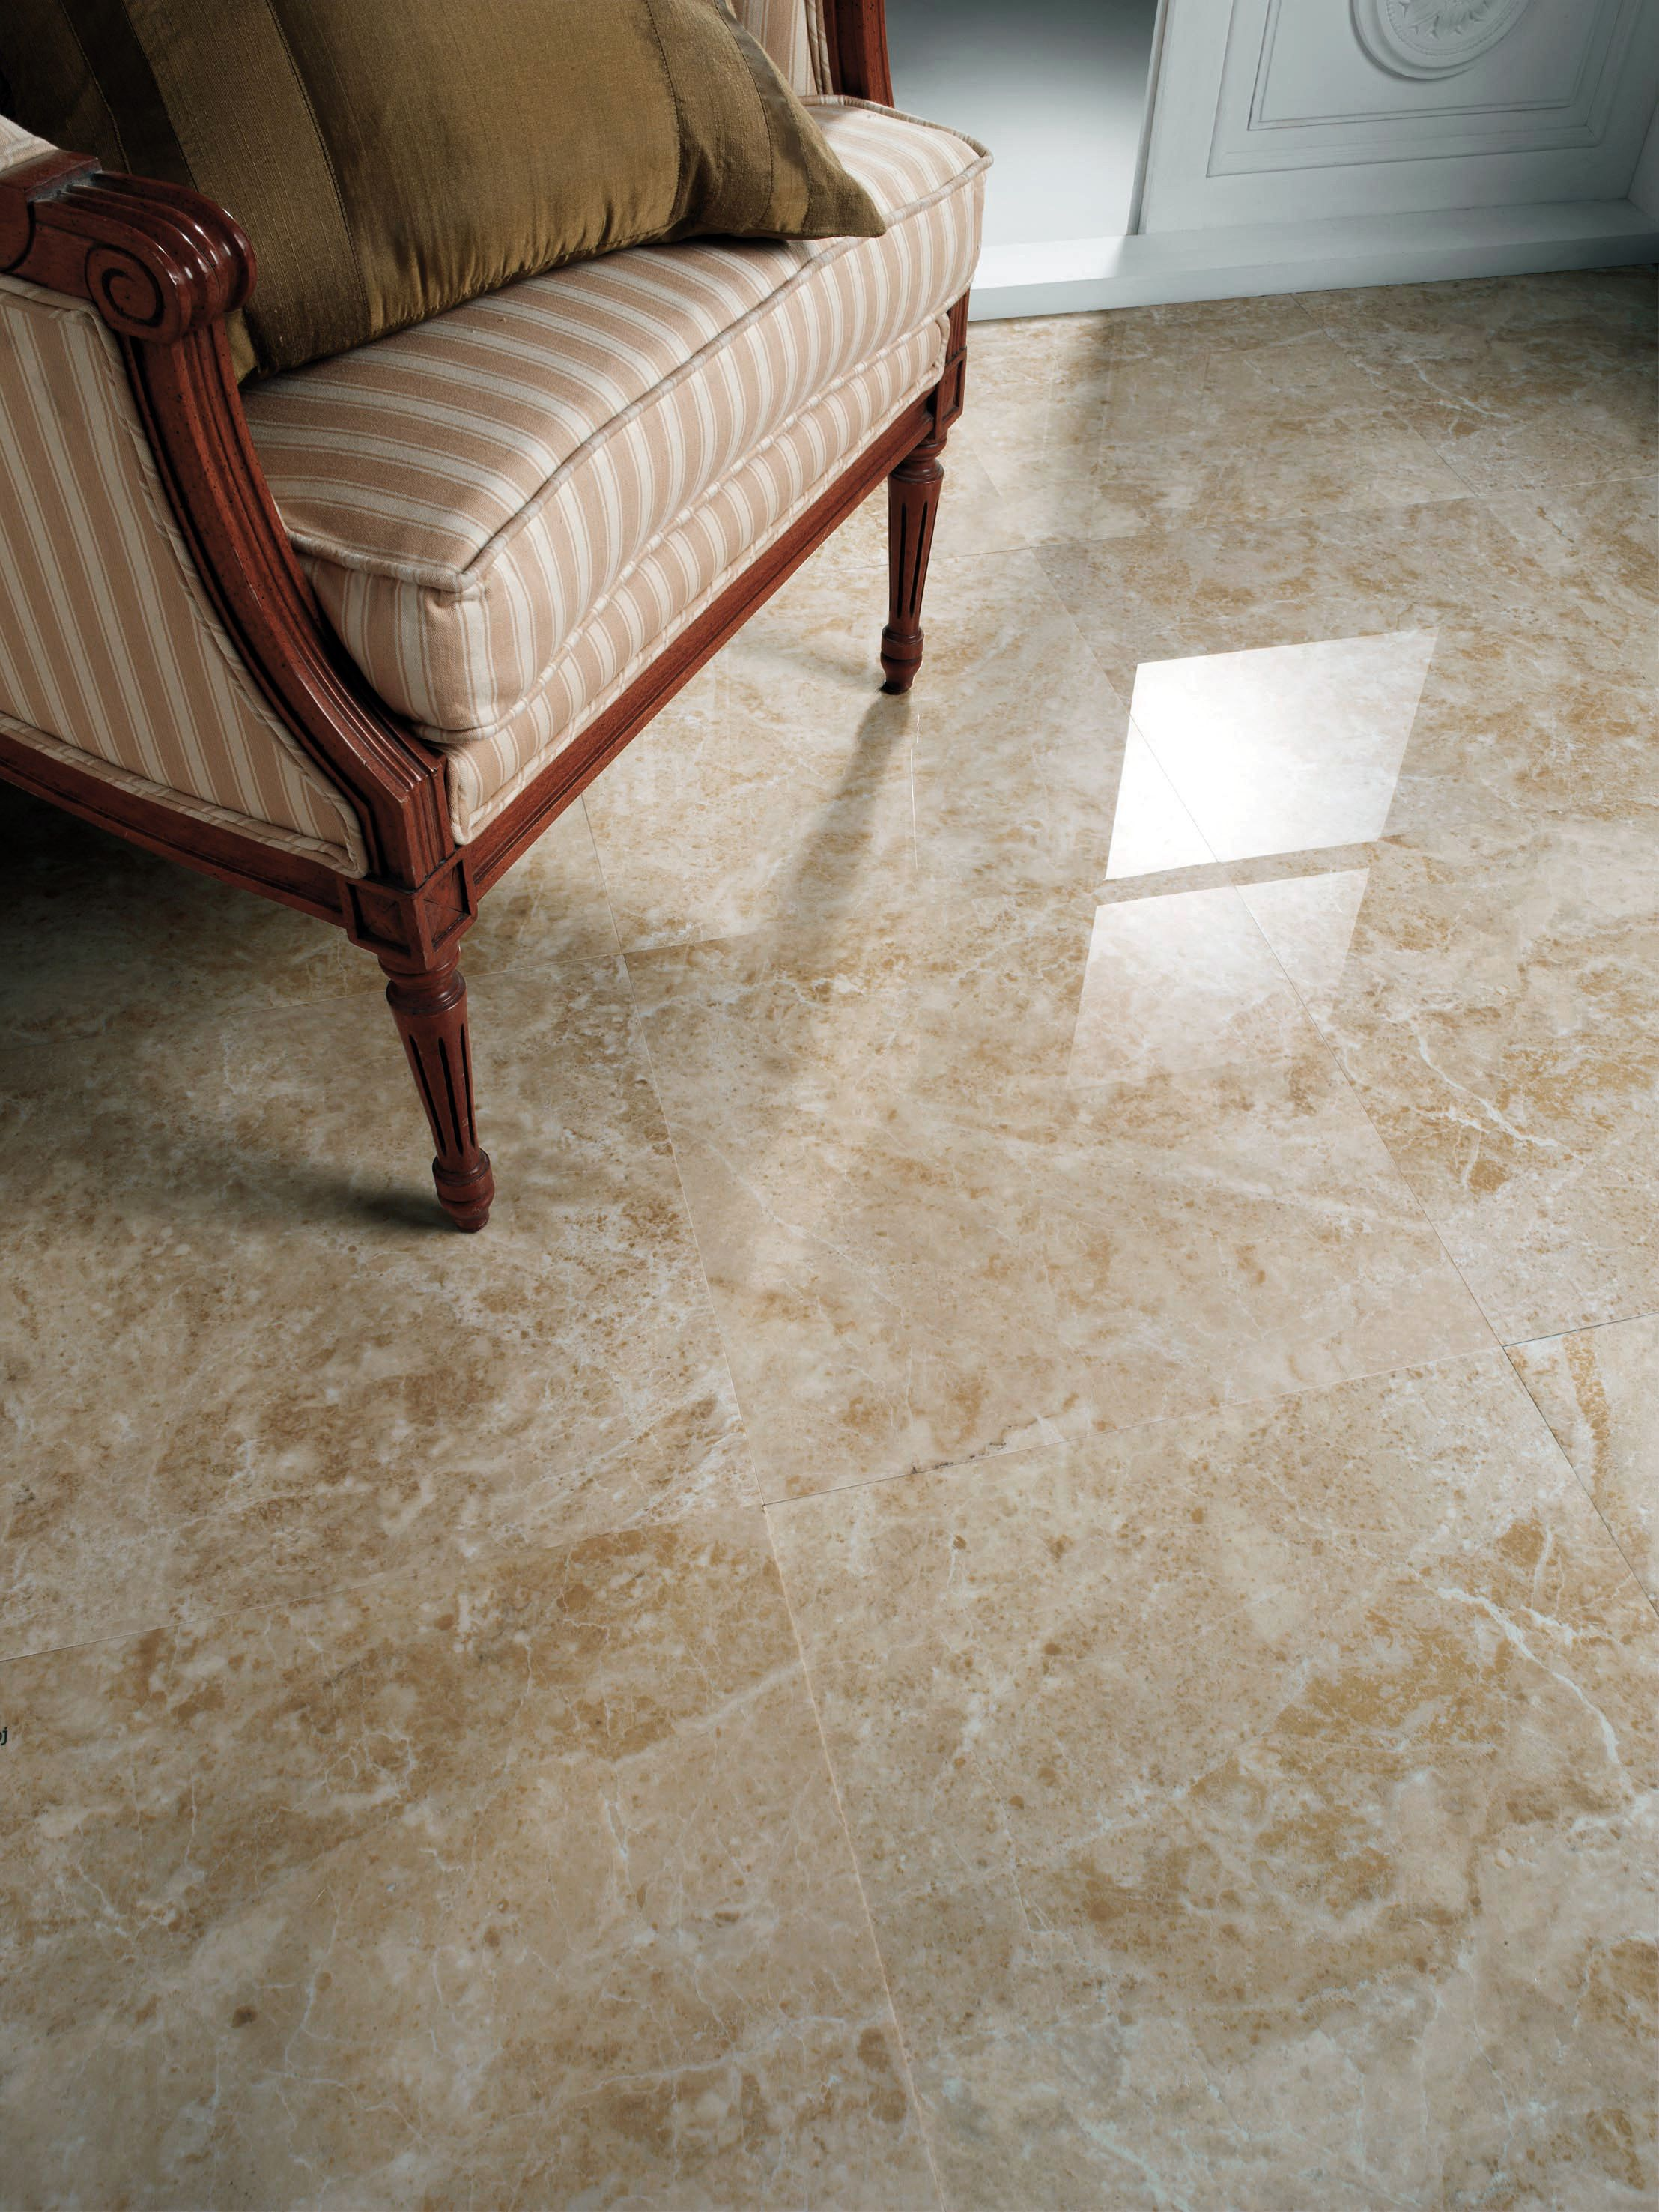 Matte floor polished wall nu travertine is stocked in three matte floor polished wall nu travertine is stocked in three sizes plus a 2x2 mosaic there is a size difference between the matte and polished dailygadgetfo Images